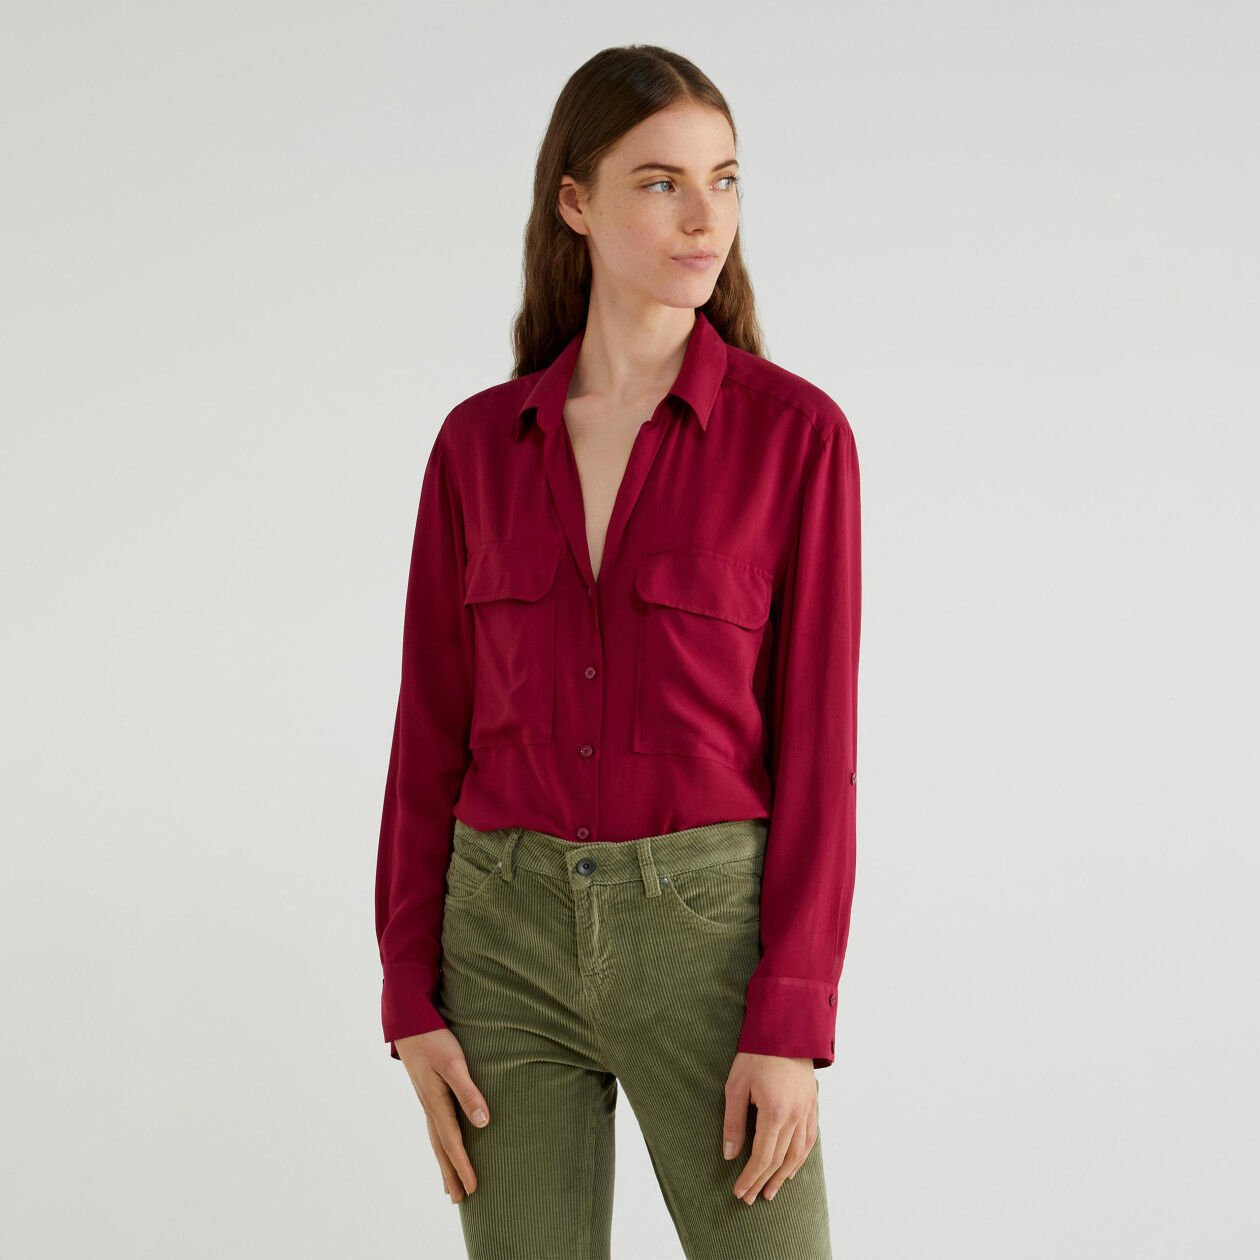 Flowy shirt with pockets